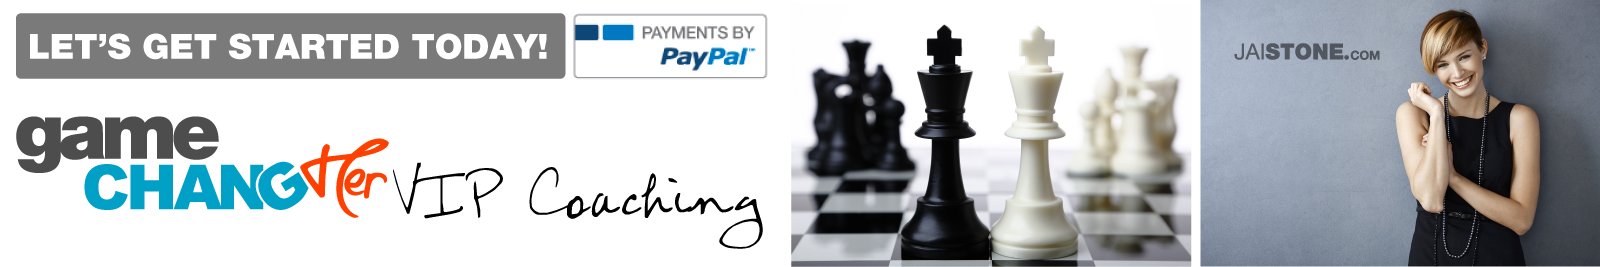 payment_coaching_vip3